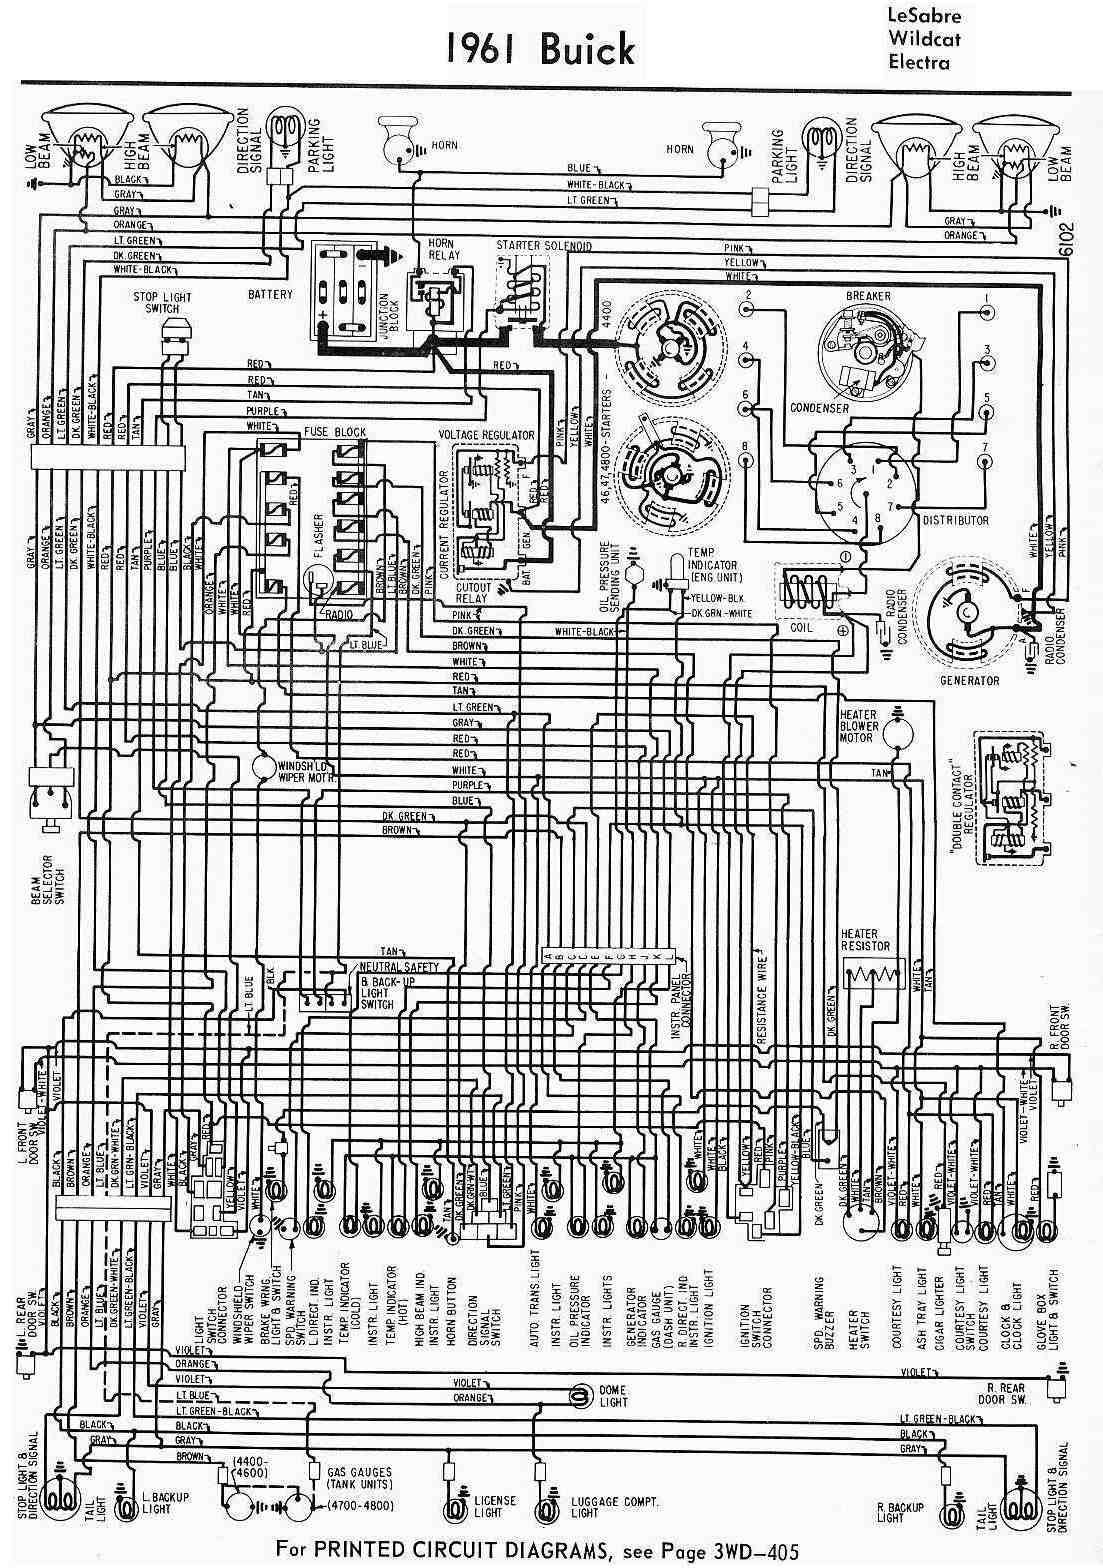 a6441862bfcf99130fb7ff5756998744 1948 studebaker wiring diagram manual repair with engine Chevy Truck Wiring Diagram at cos-gaming.co